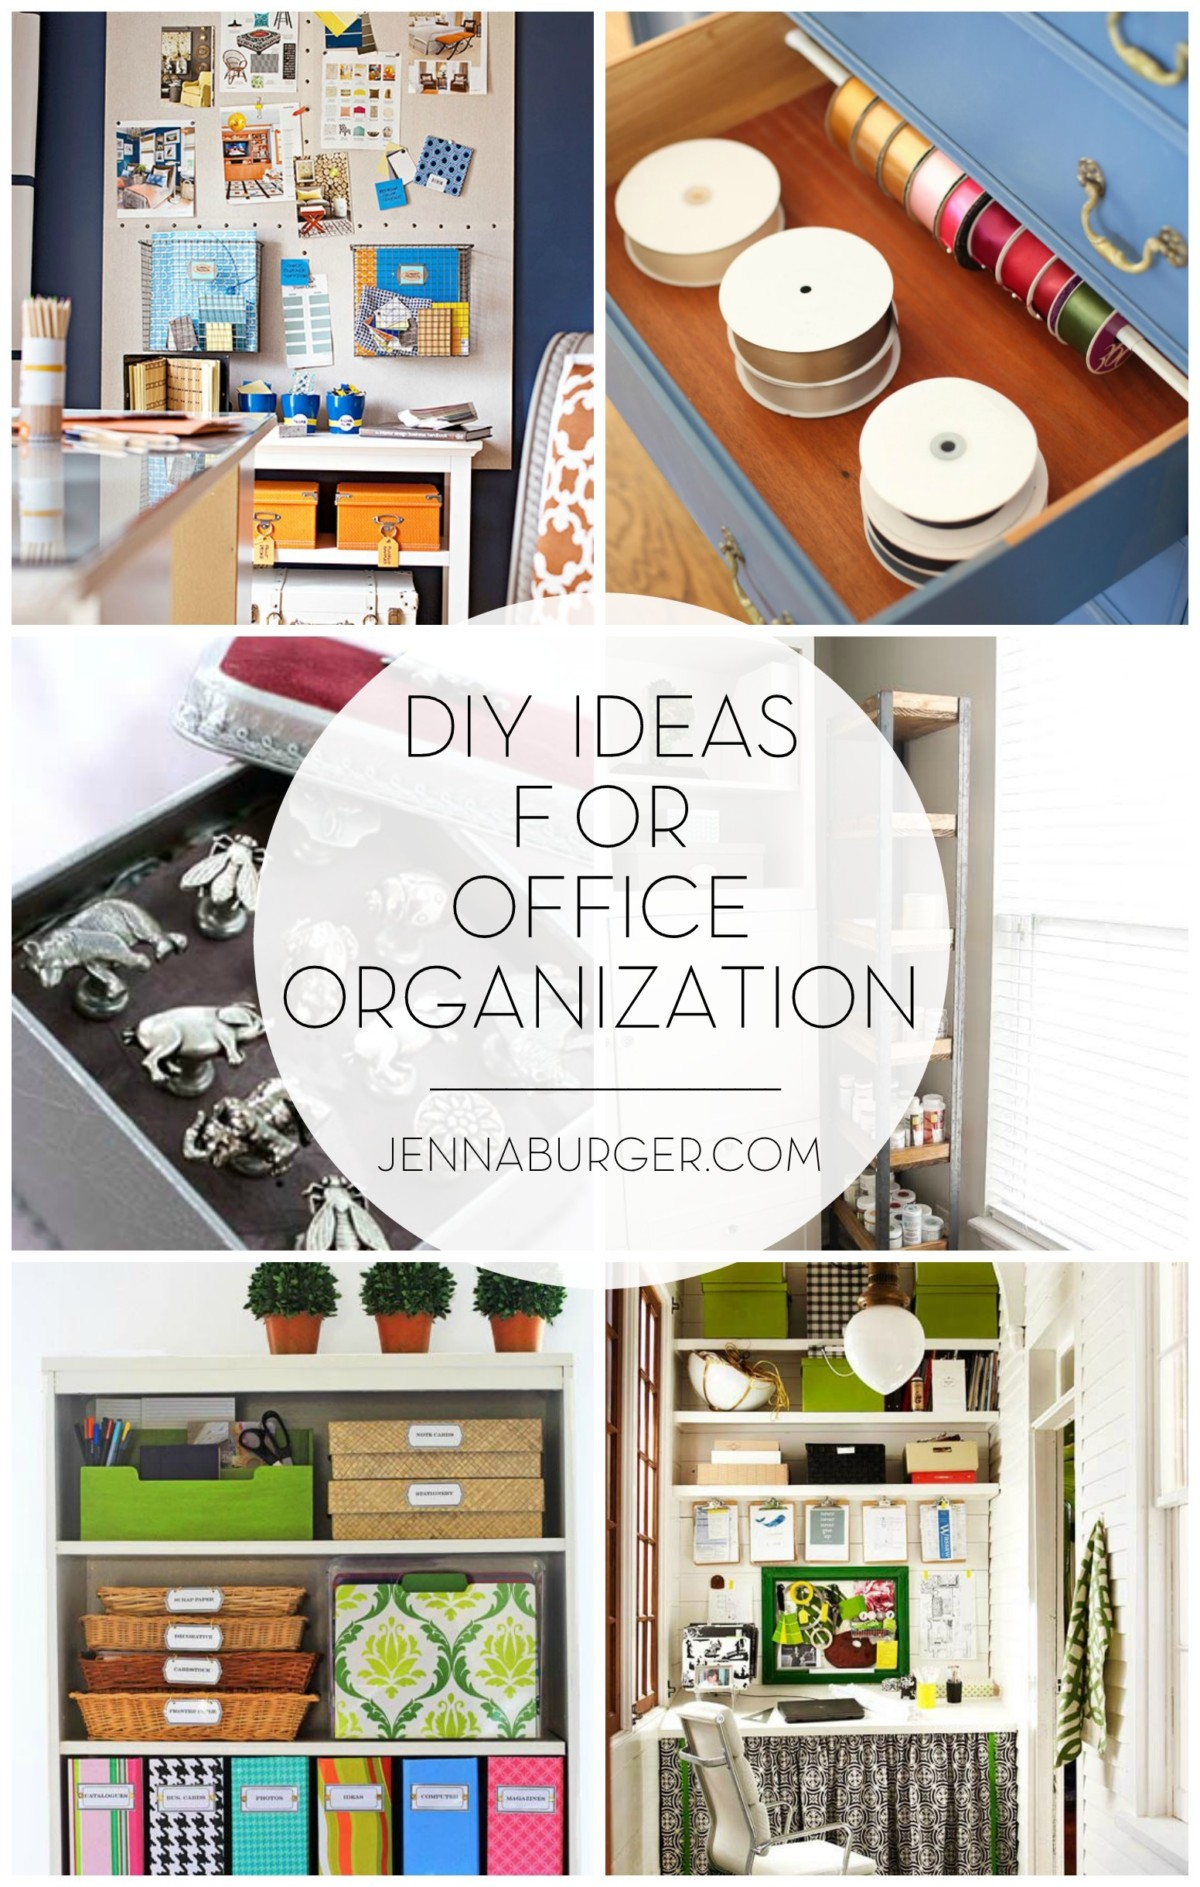 Diy office organization jenna burger do it yourself creations for get the office organized not to solutioingenieria Images